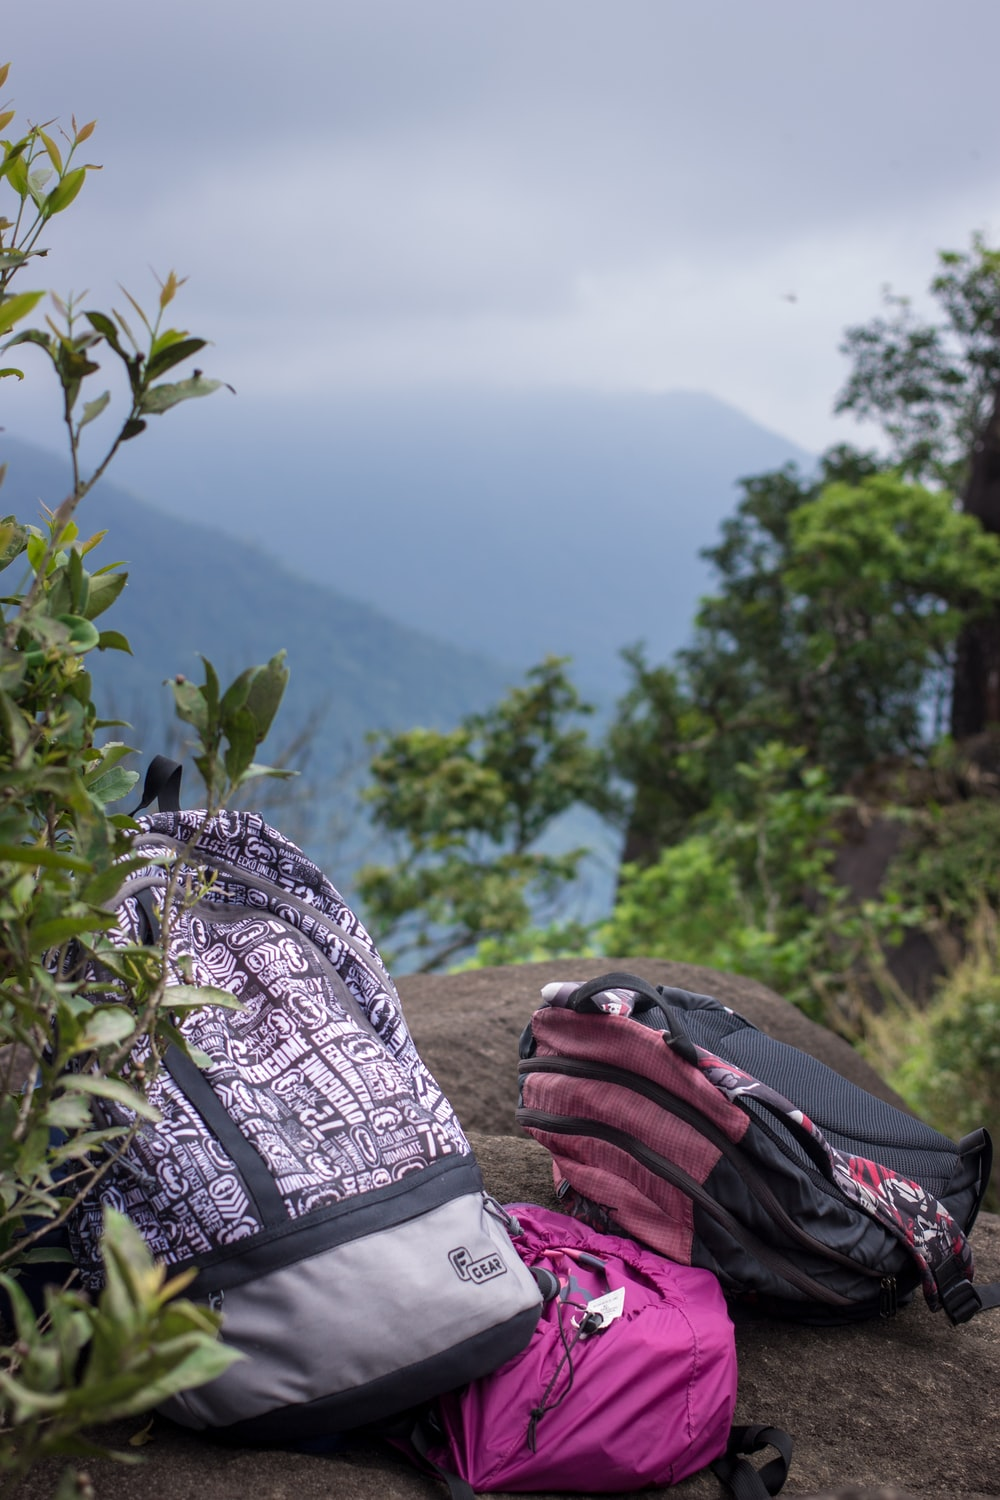 three backpacks on gray rock under cloudy sky during daytime